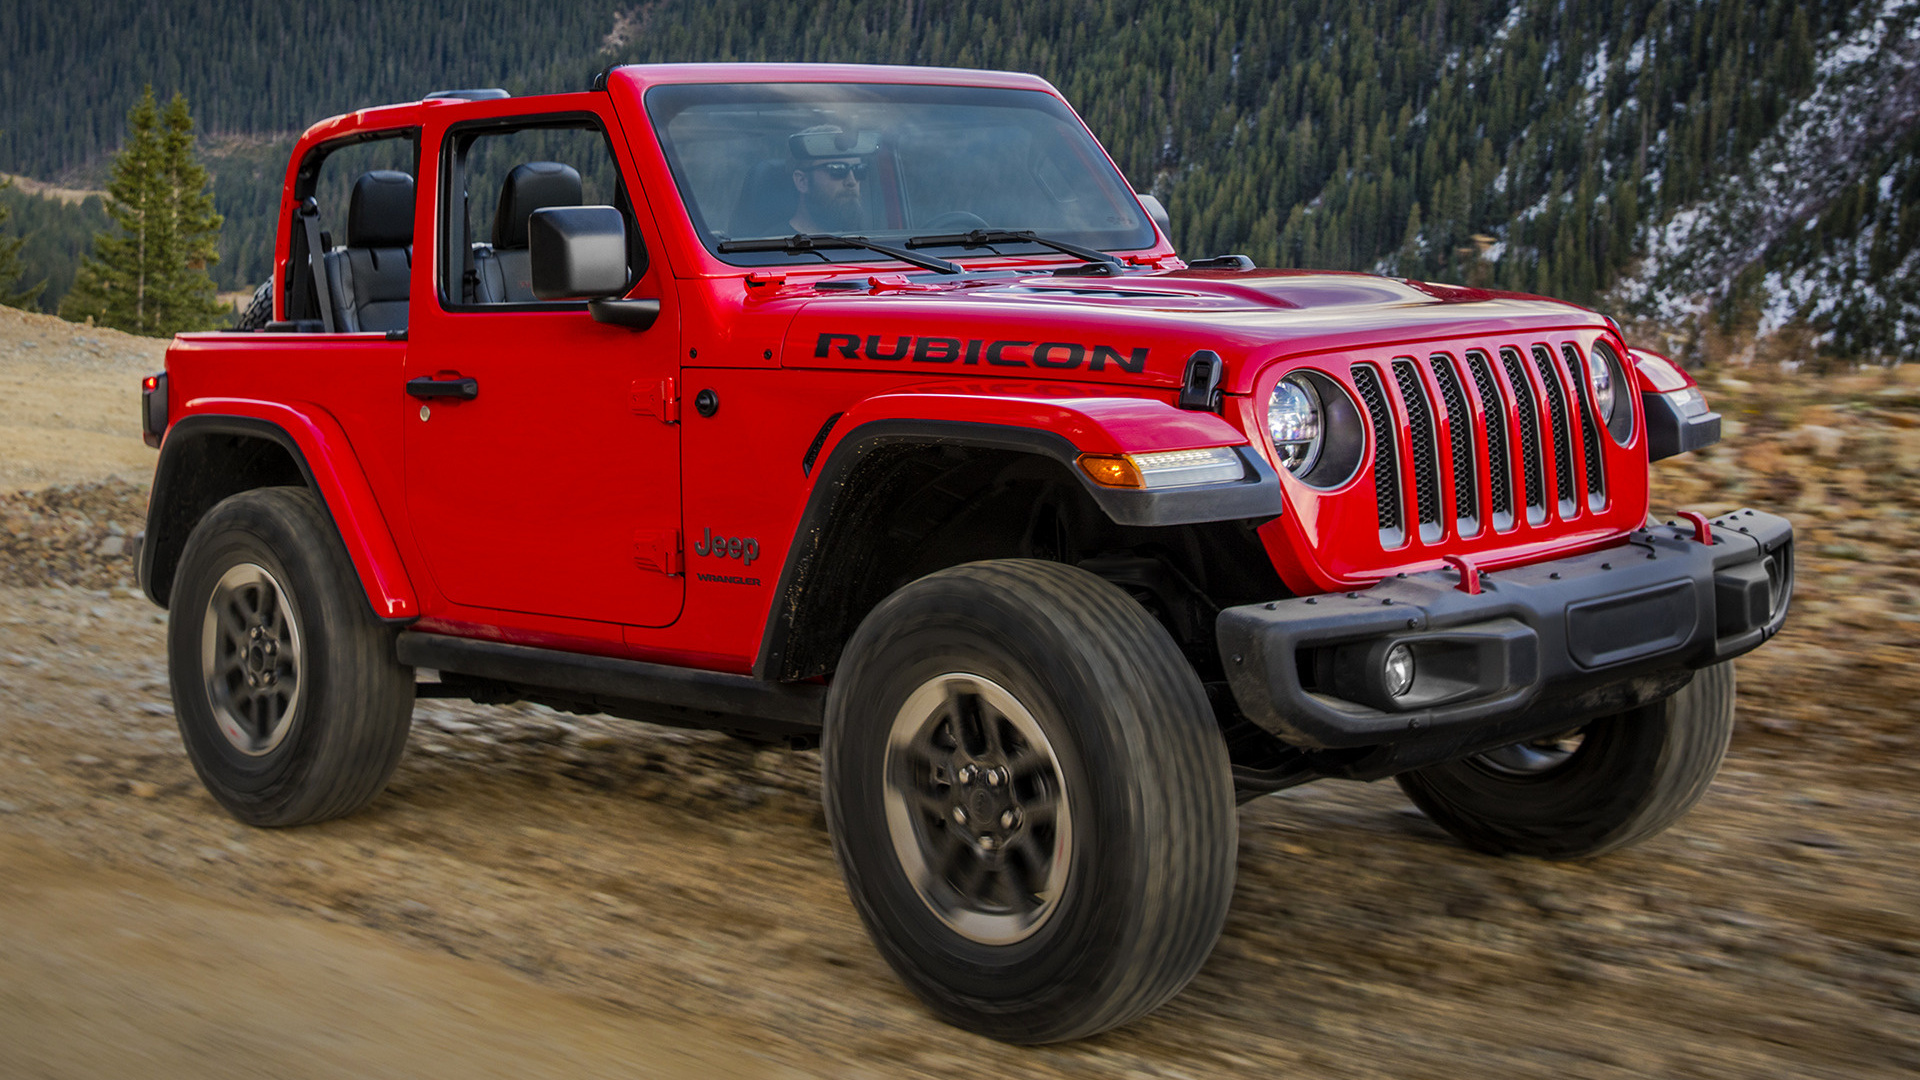 Jeep Car Images Hd: 2018 Jeep Wrangler Rubicon